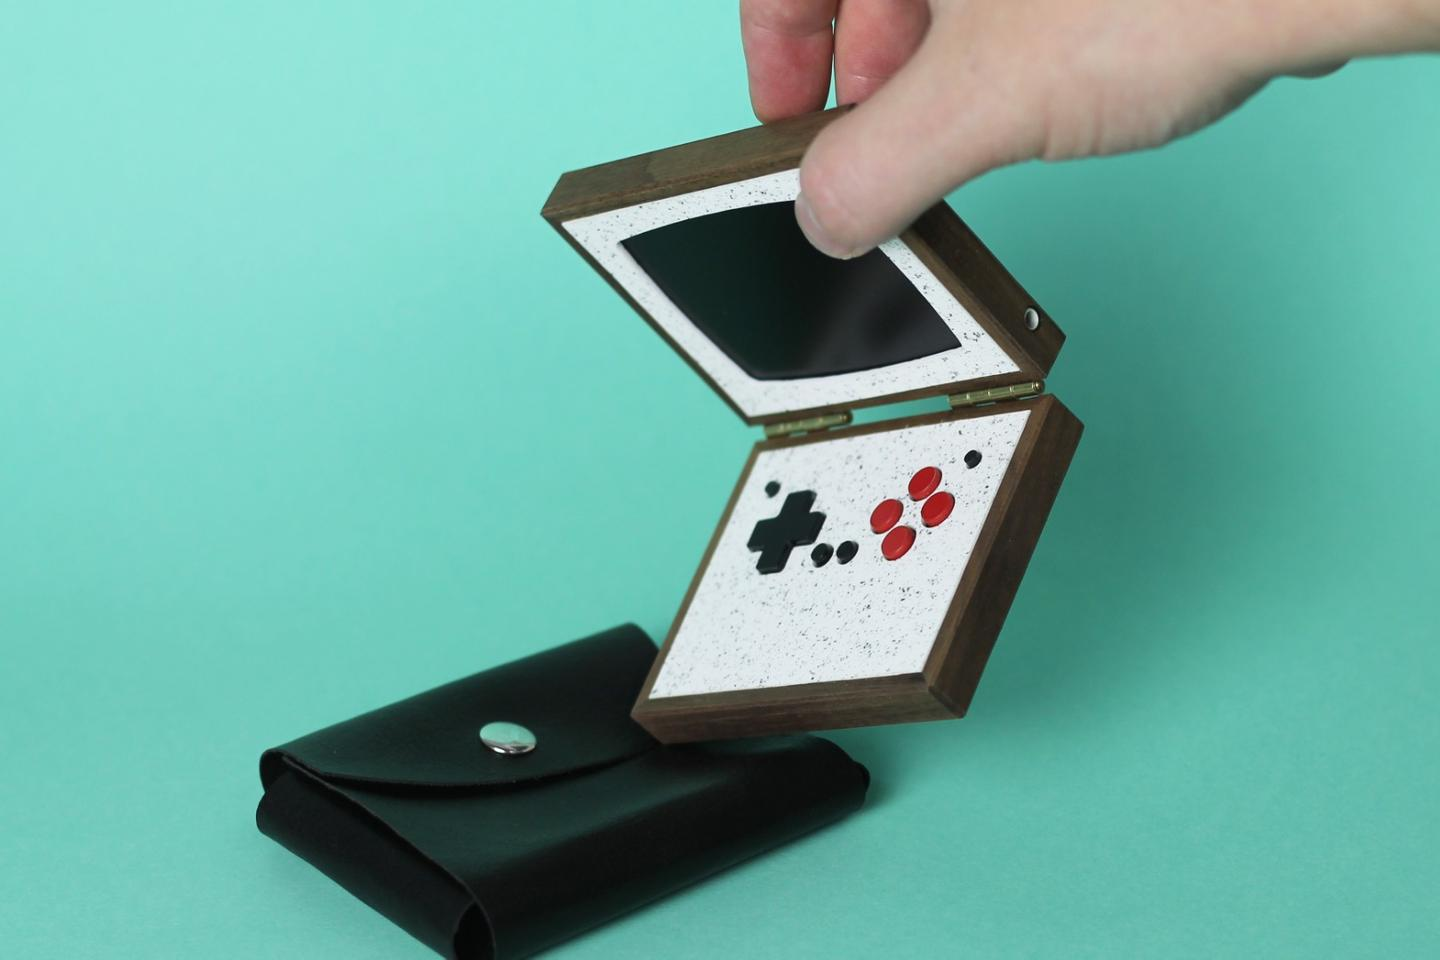 Swedish retro tech designer gives pocket gamers the choice